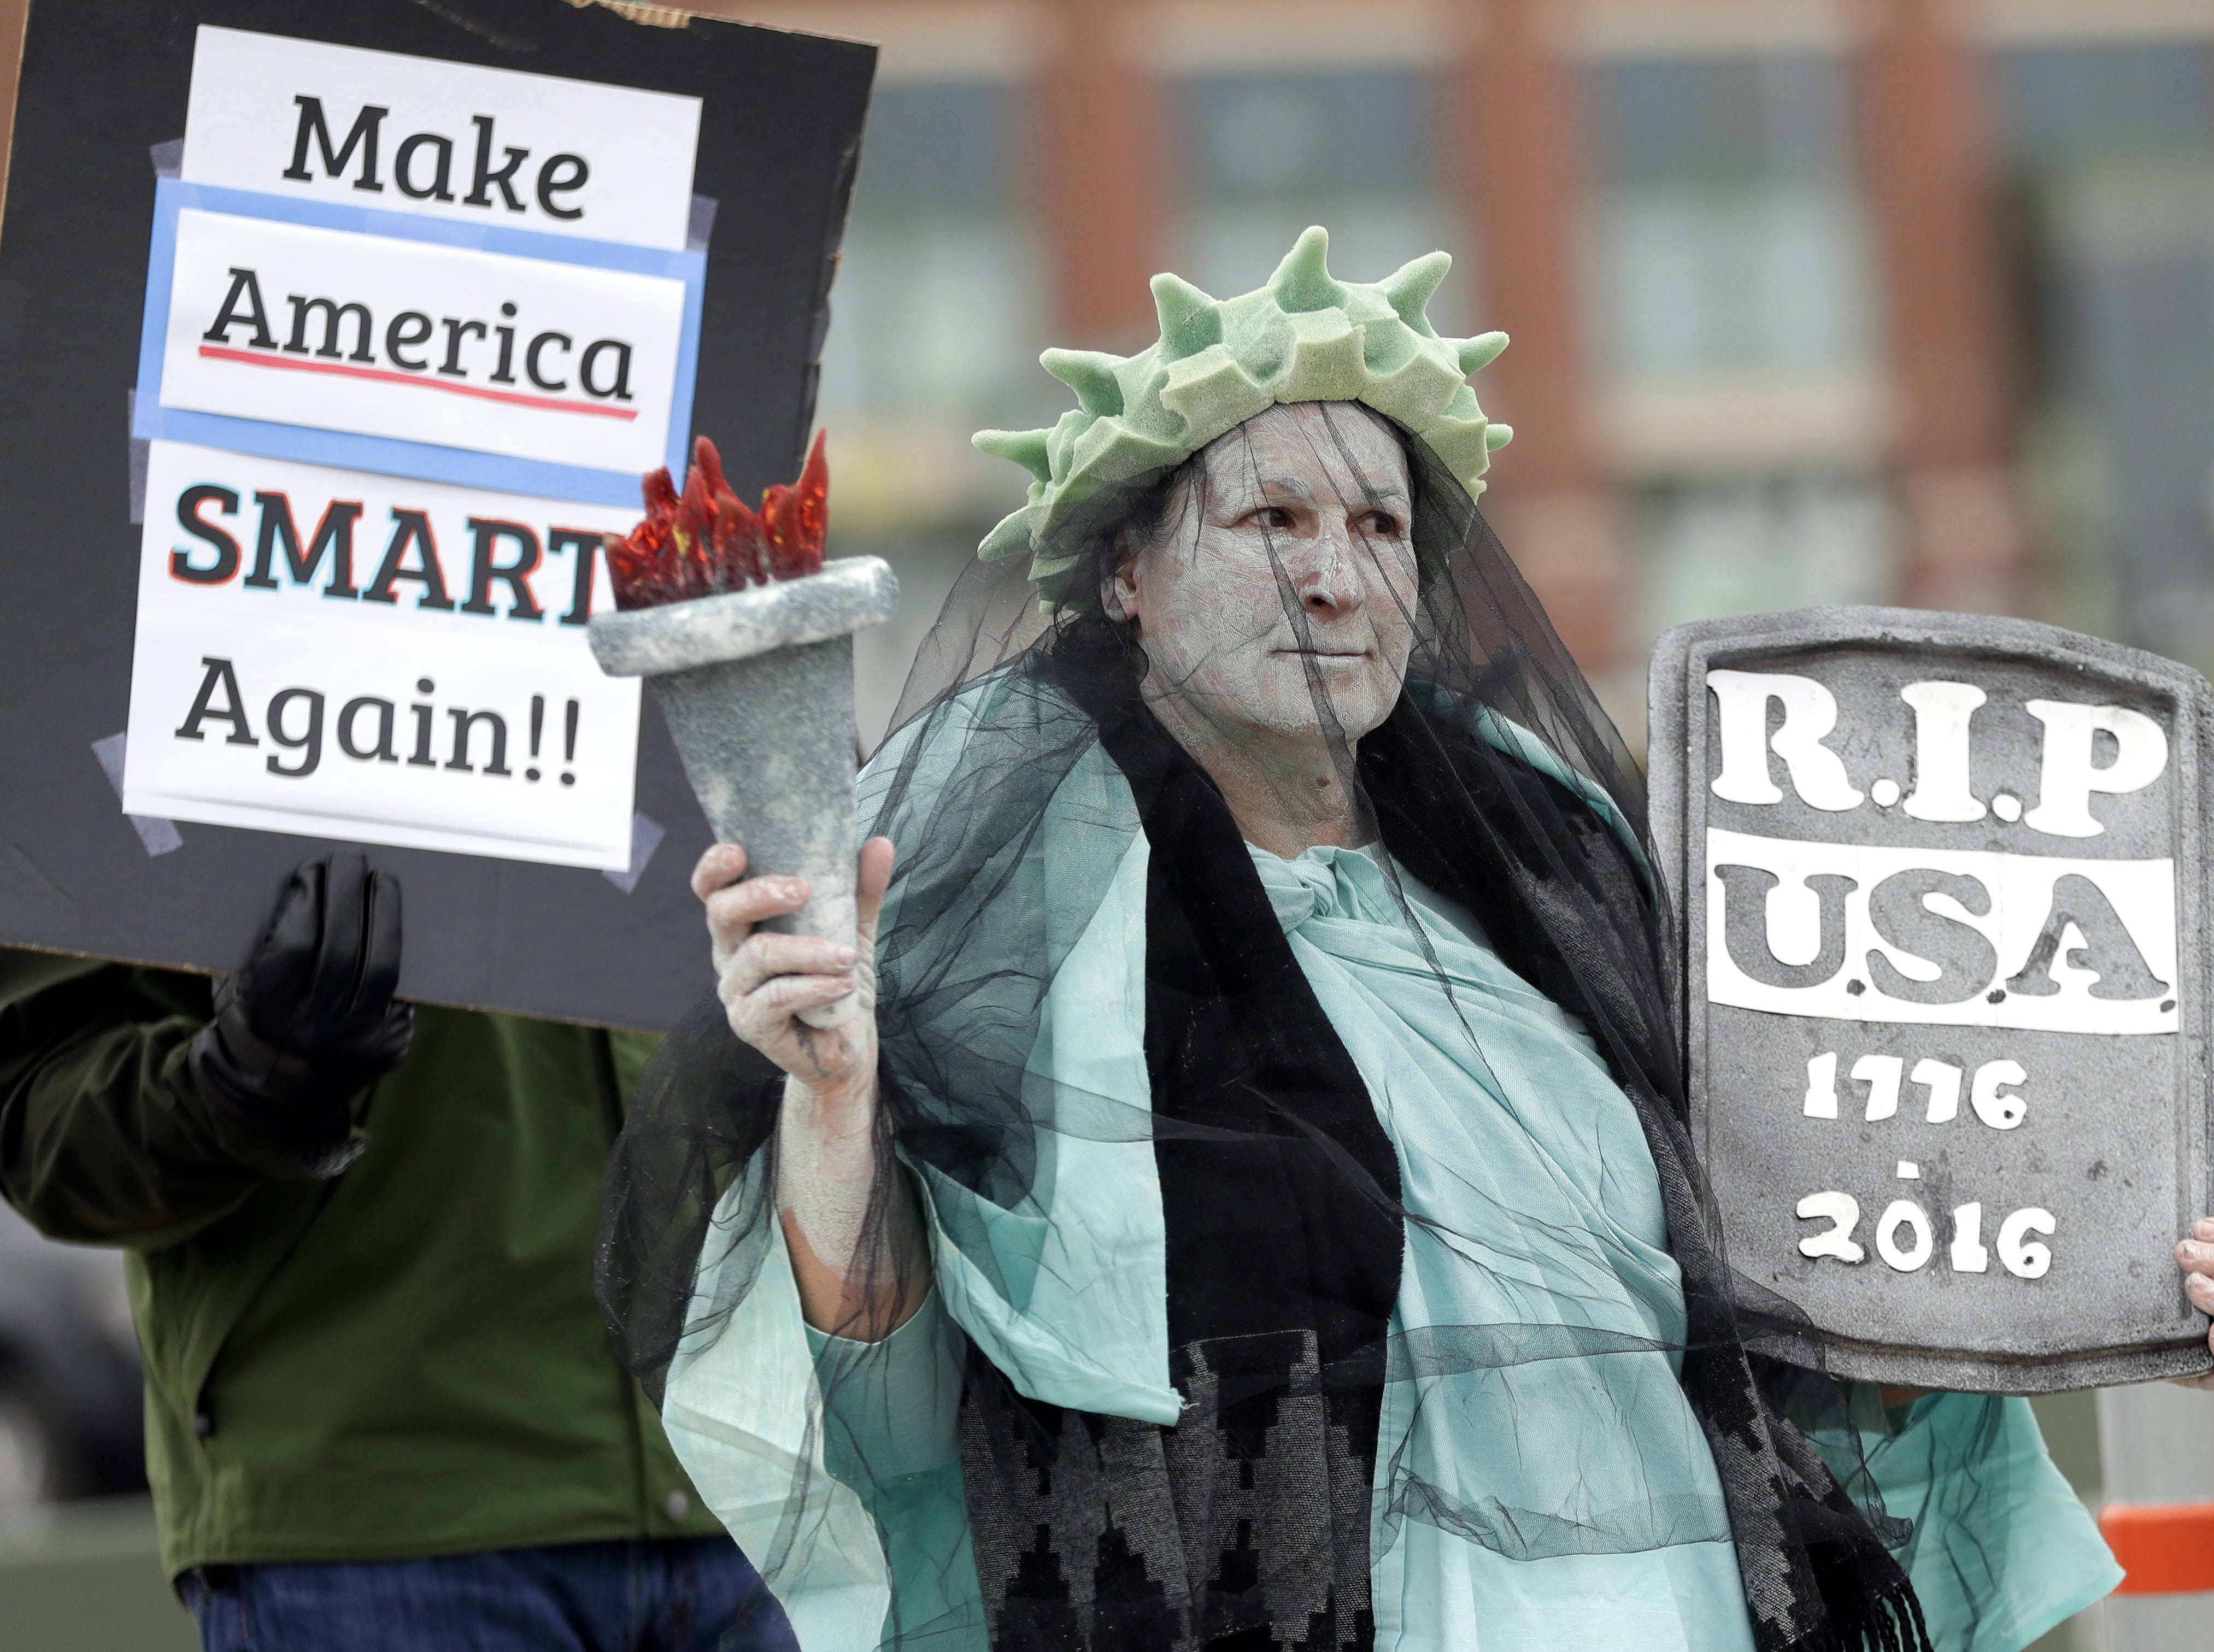 A woman dressed as the Statue of Liberty protests President Donald Trump before his rally at the Resch Center on April 27, 2019 in Ashwaubenon, Wis.